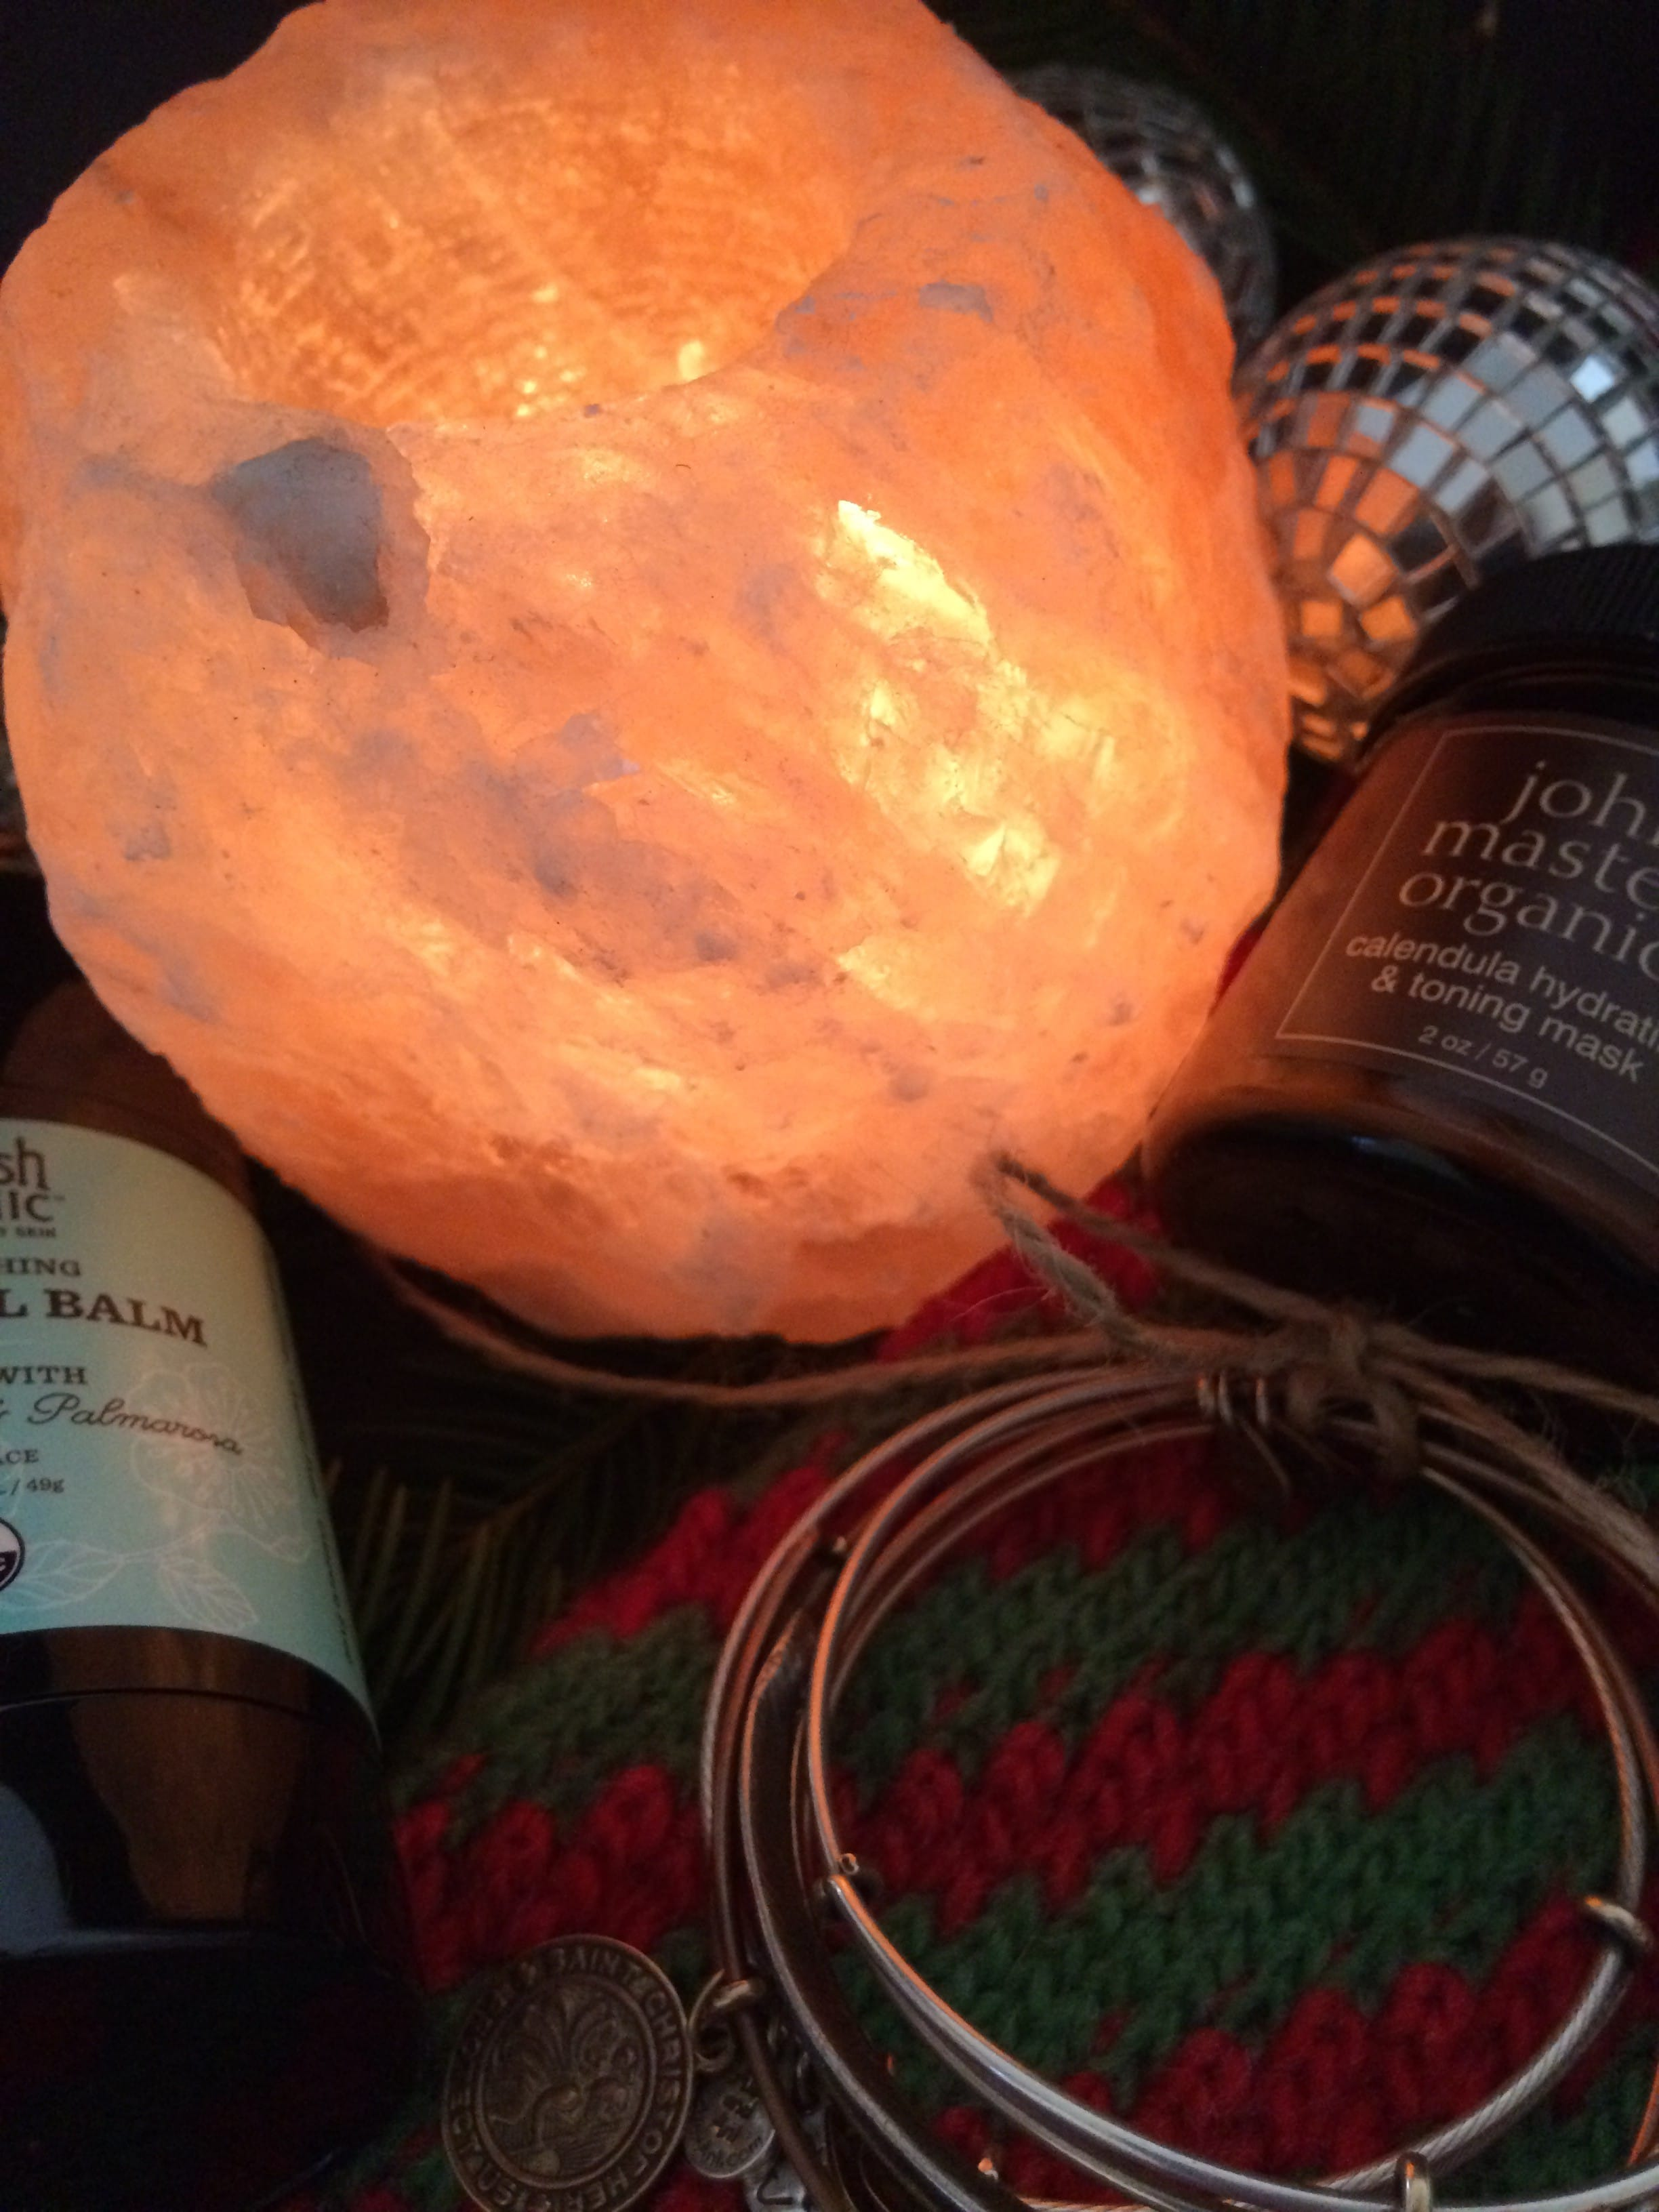 last minute gift ideas, himalayan salt candle holder, argan oil, calendula face mask, healing, eco-friendly bracelets